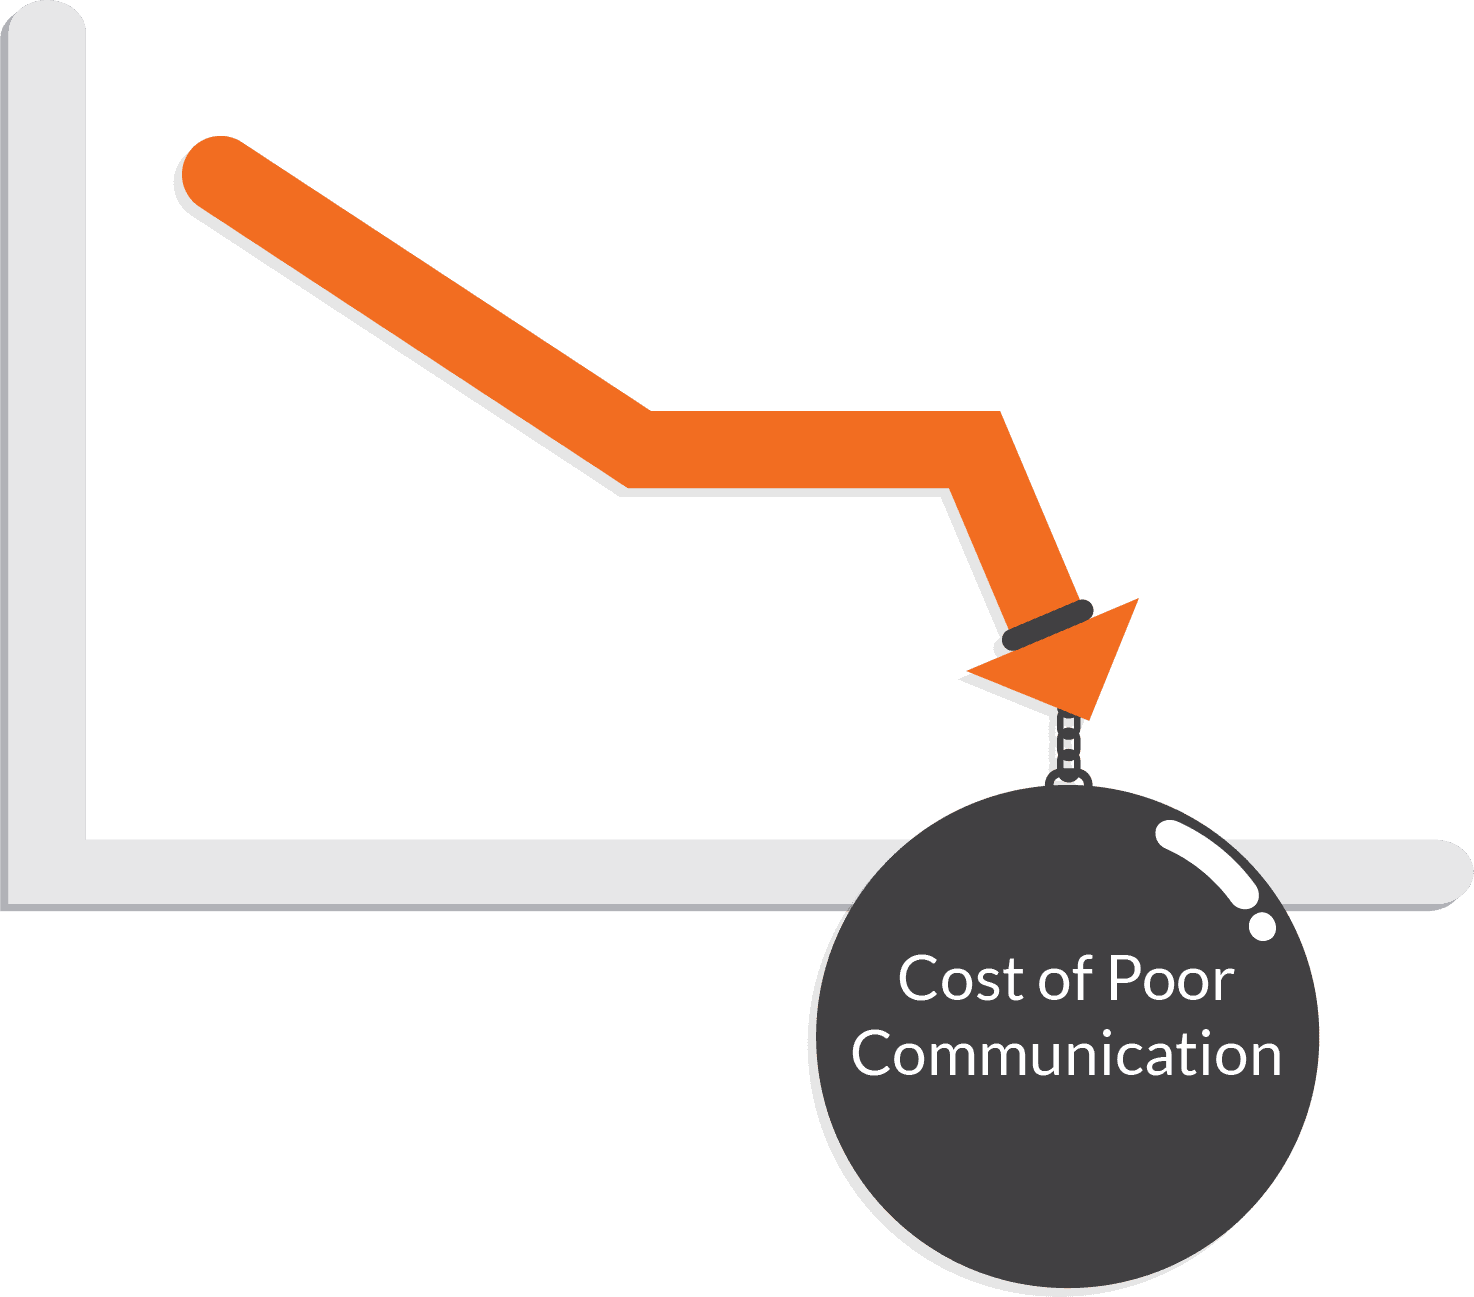 Cost of Poor Communication